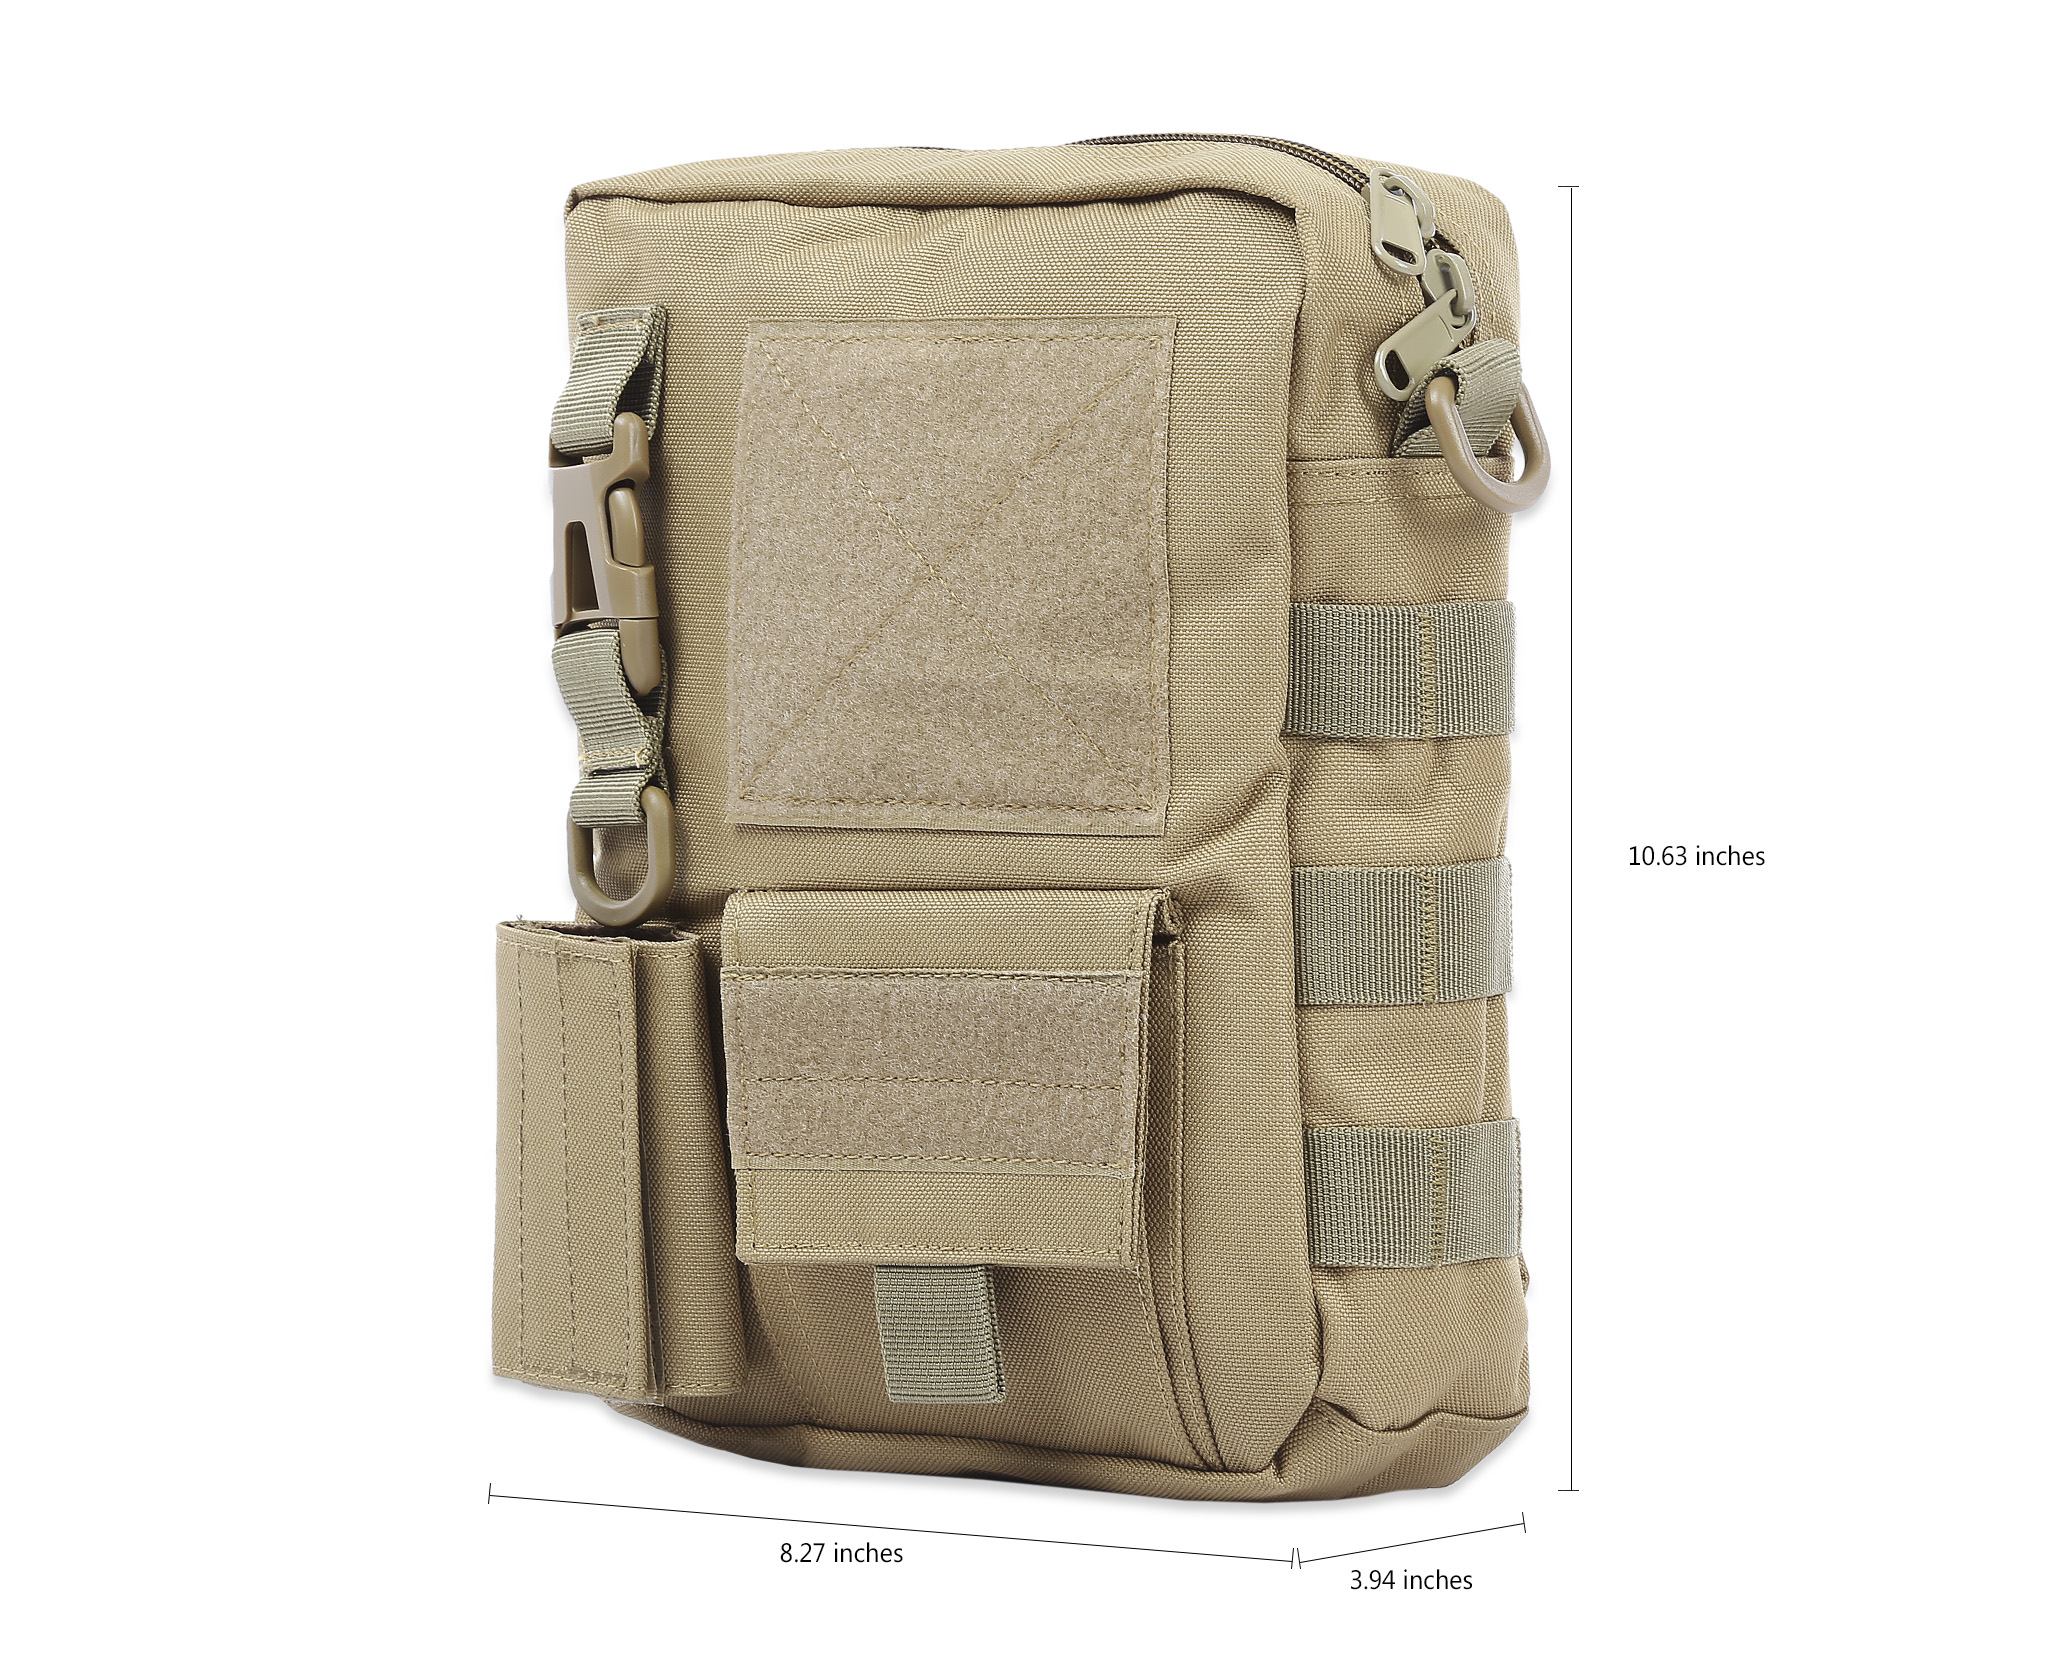 FREEKNIGHT BL086 Outdoor Water Resistant Single Shoulder Bag Camping Hunting Military Camouflage Pack